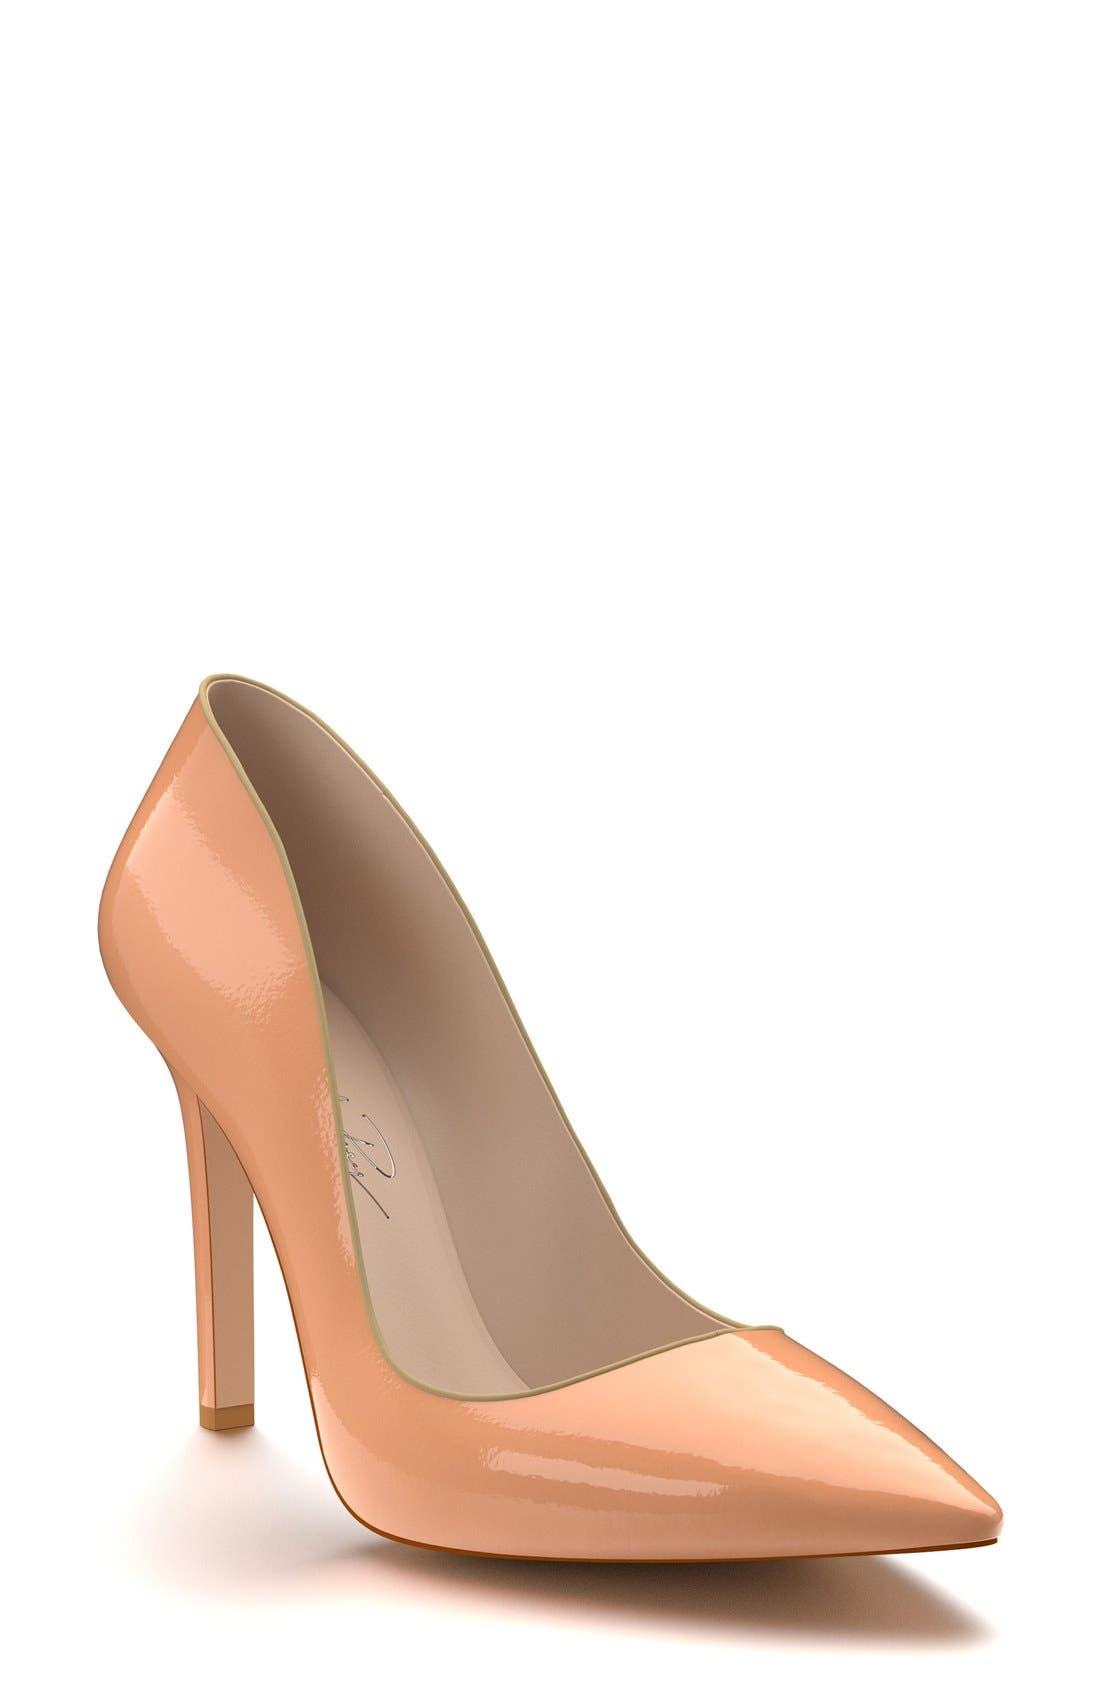 Pointy Toe Pump,                             Main thumbnail 1, color,                             Nude Patent